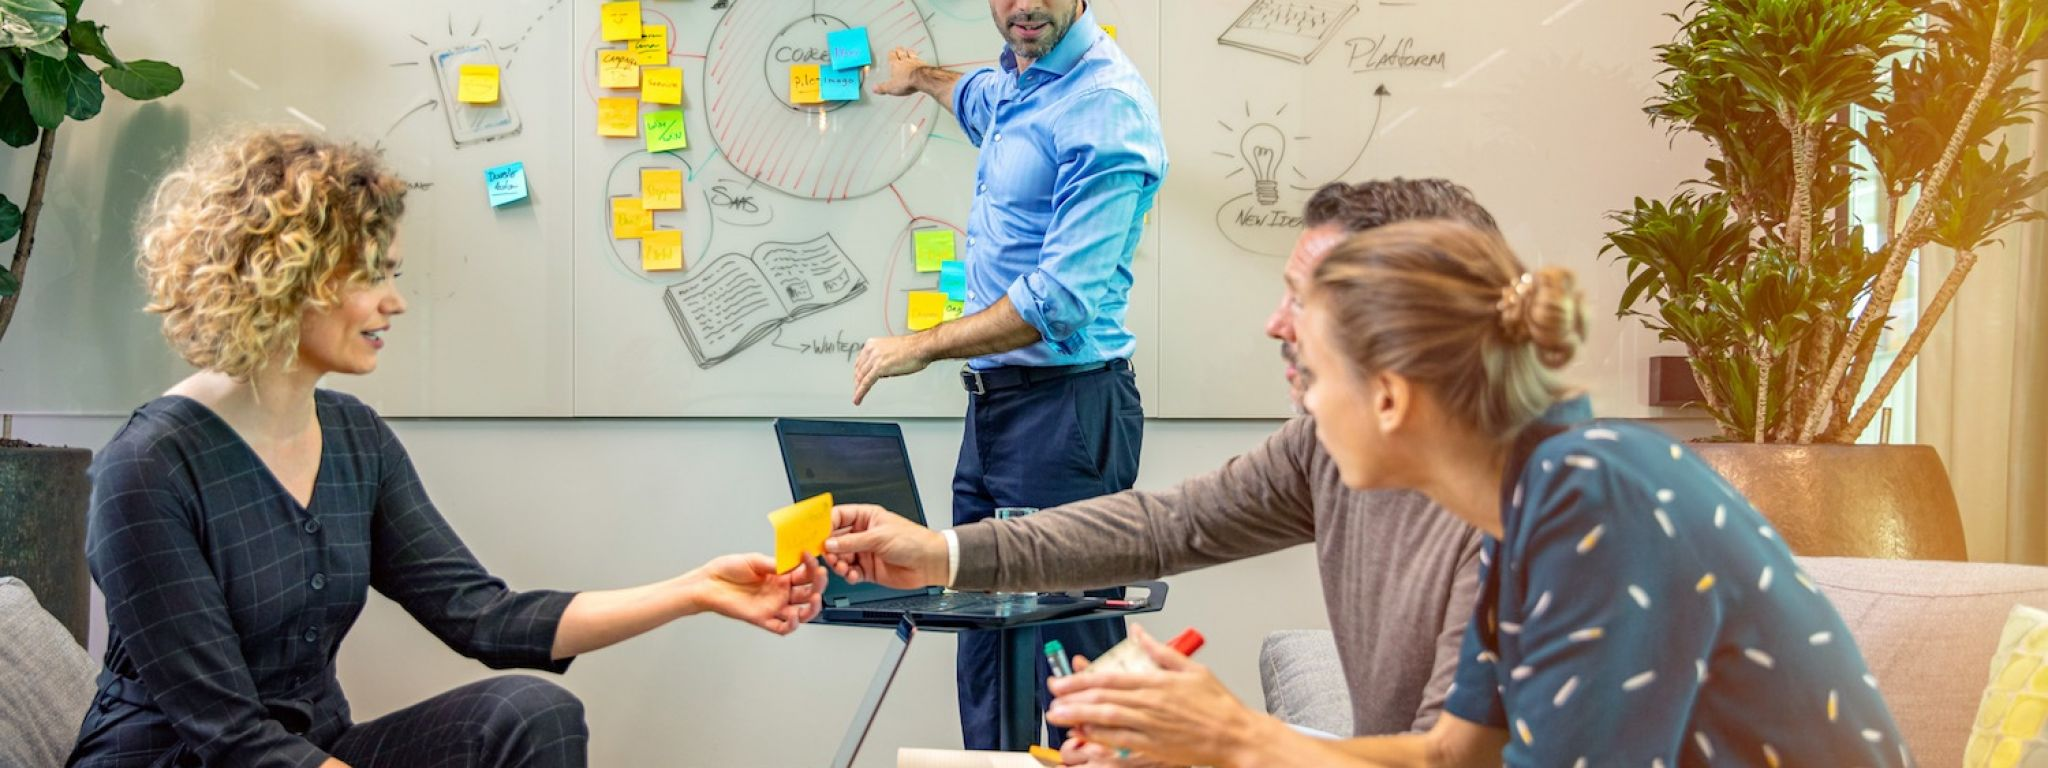 Why Changing towards Activity Based Working in your Office